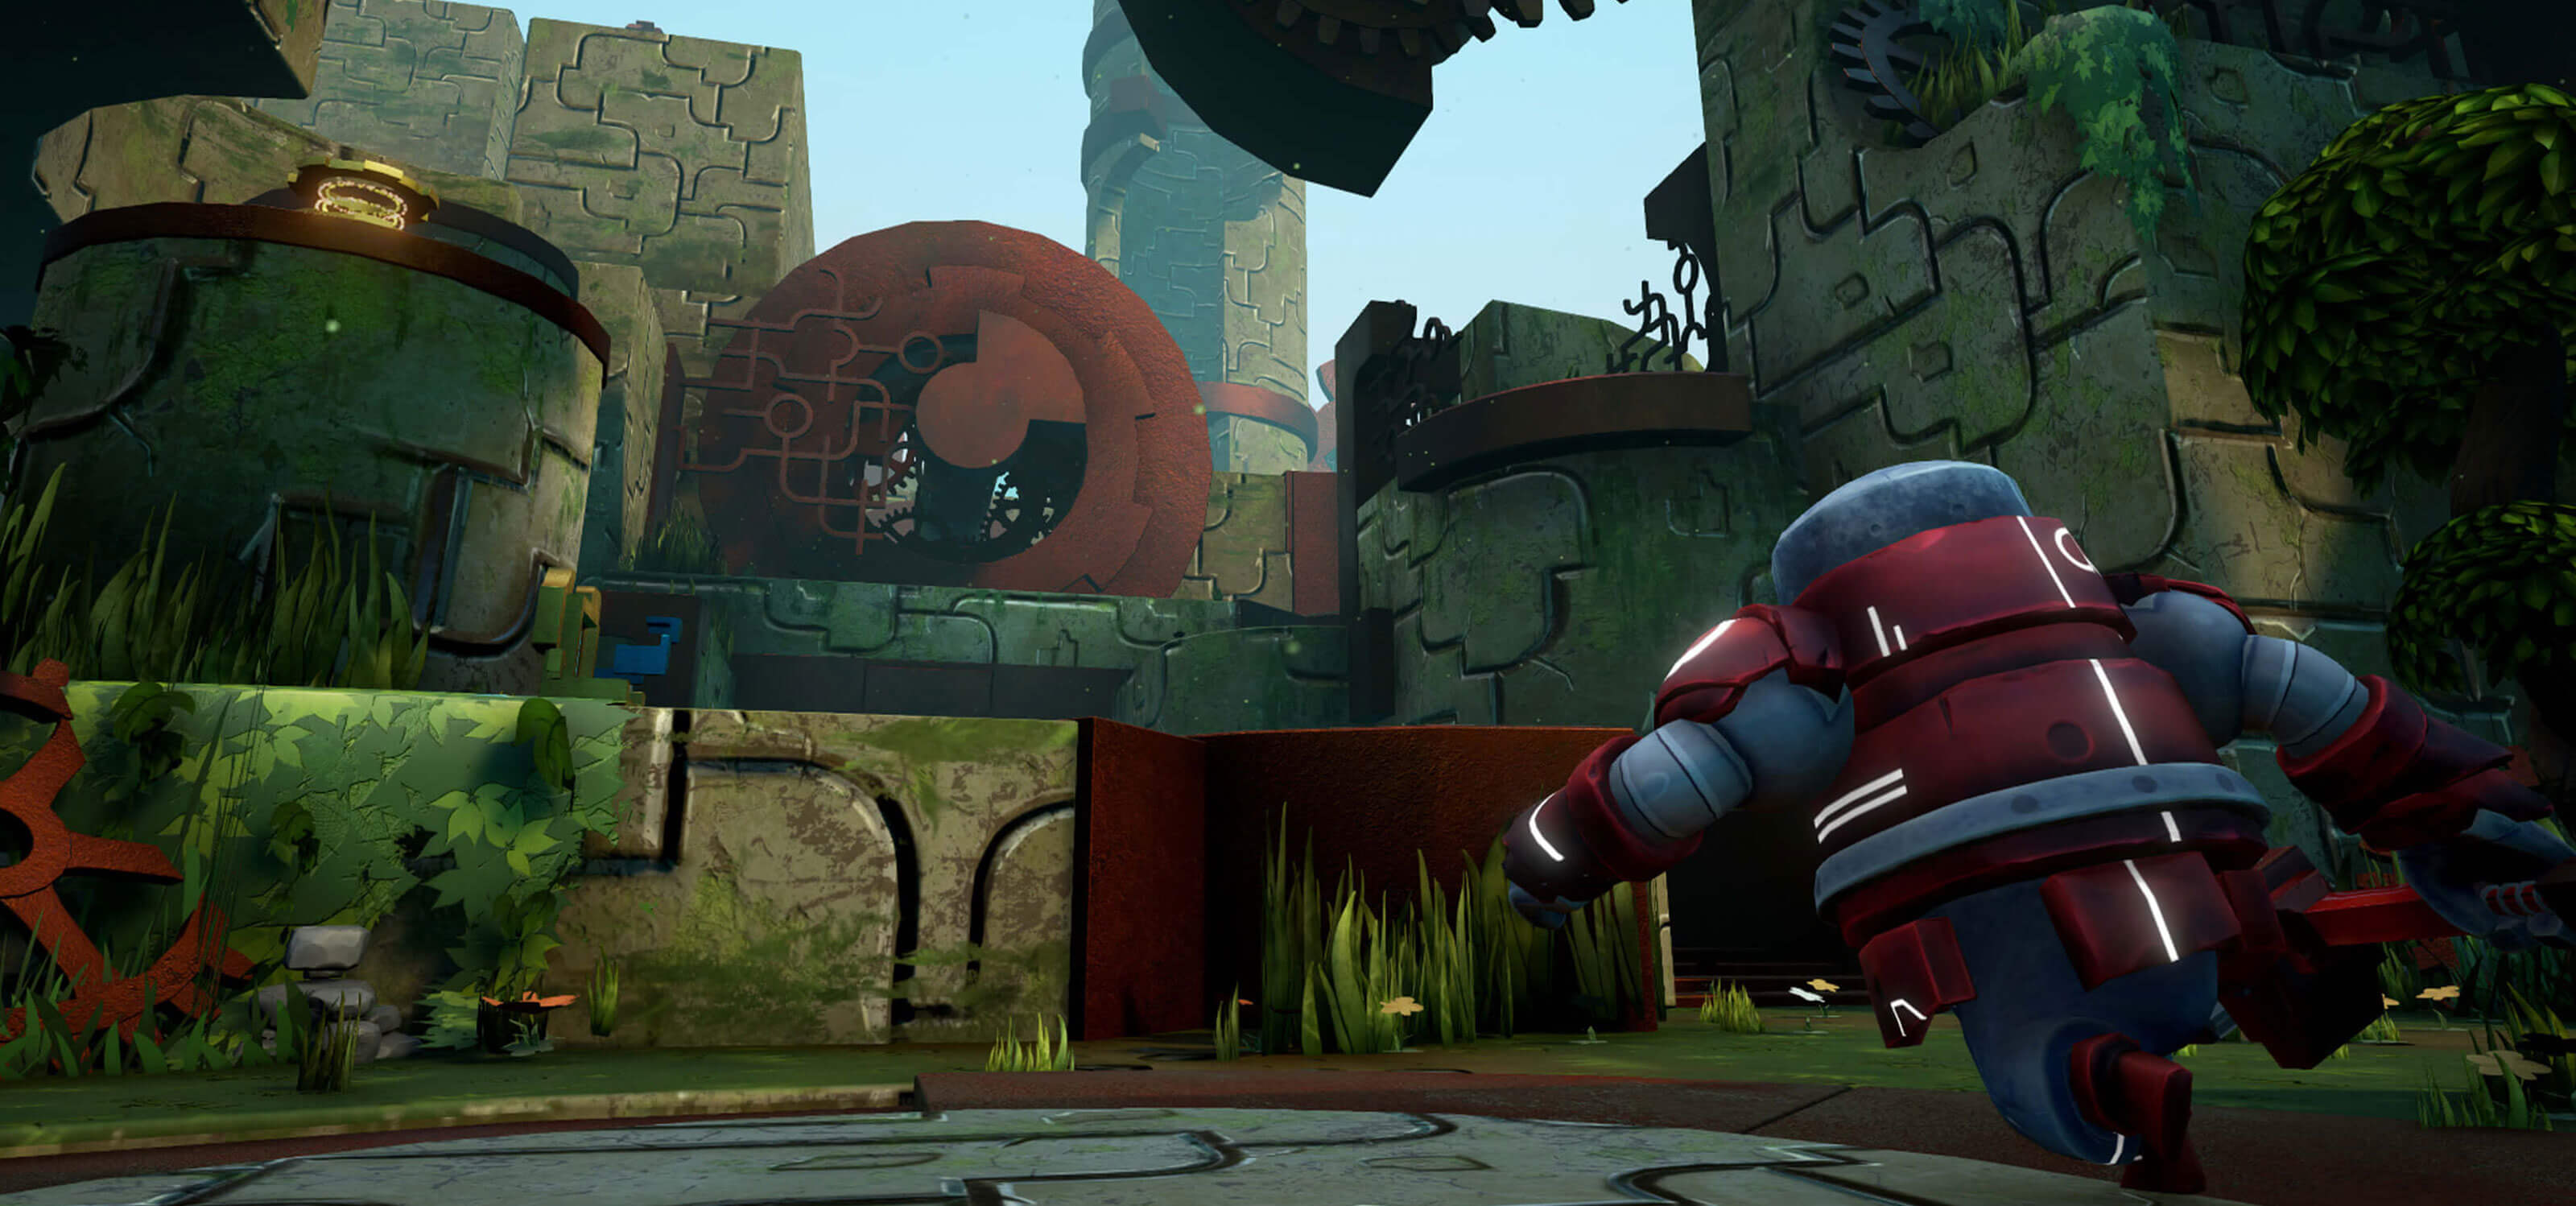 A red robot runs towards a stone structure overgrown with green foliage.